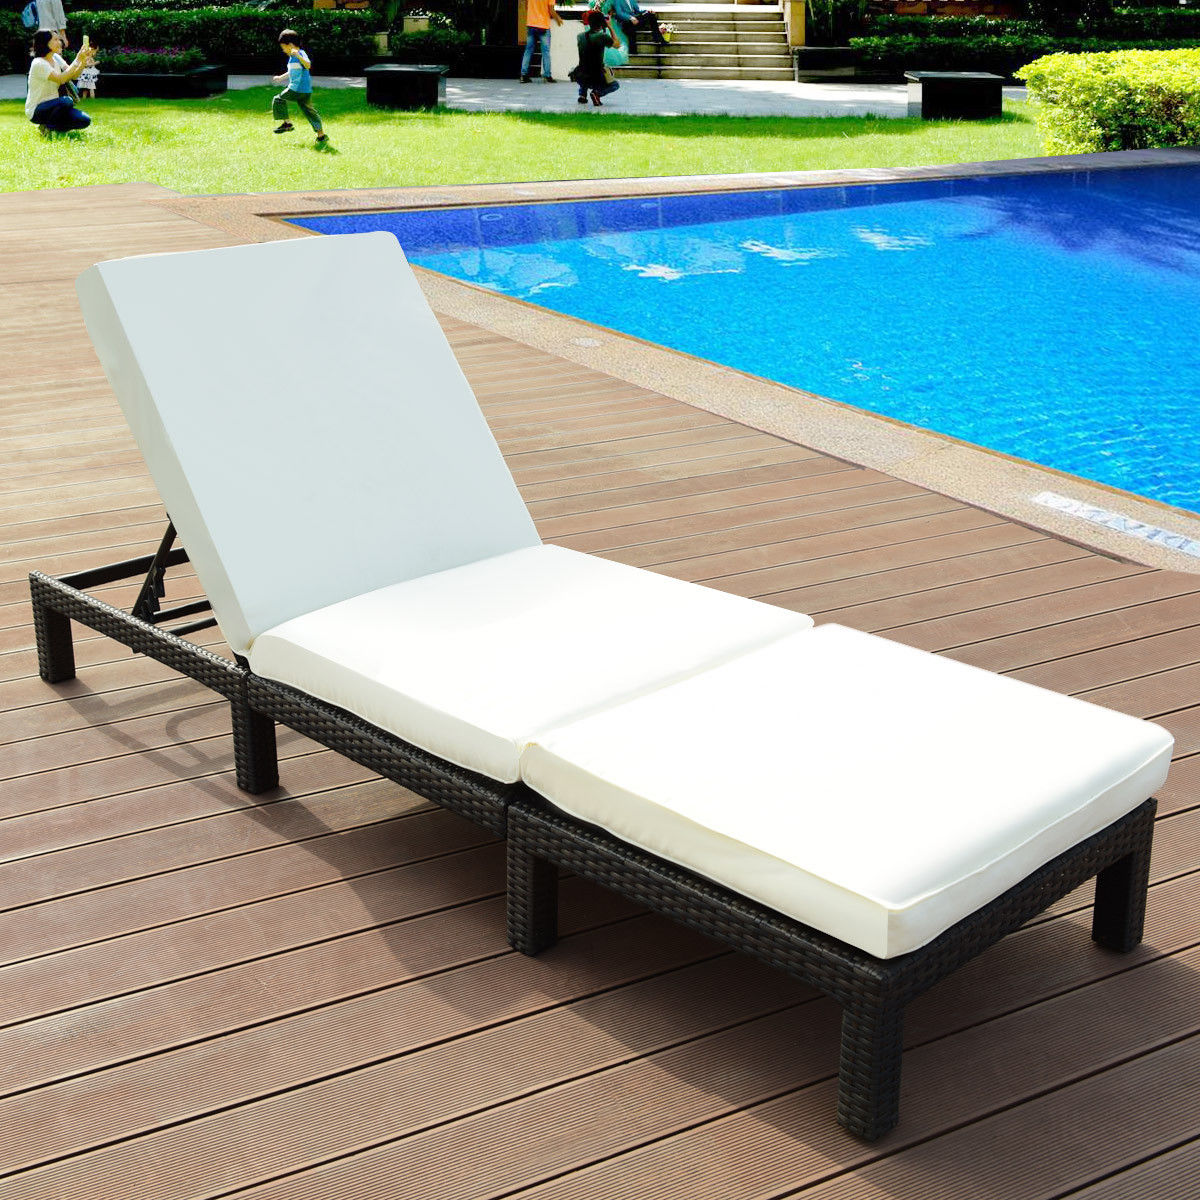 Costway Patio Adjustable Wicker Chaise Lounge Poolside Couch Furniture with Cushion